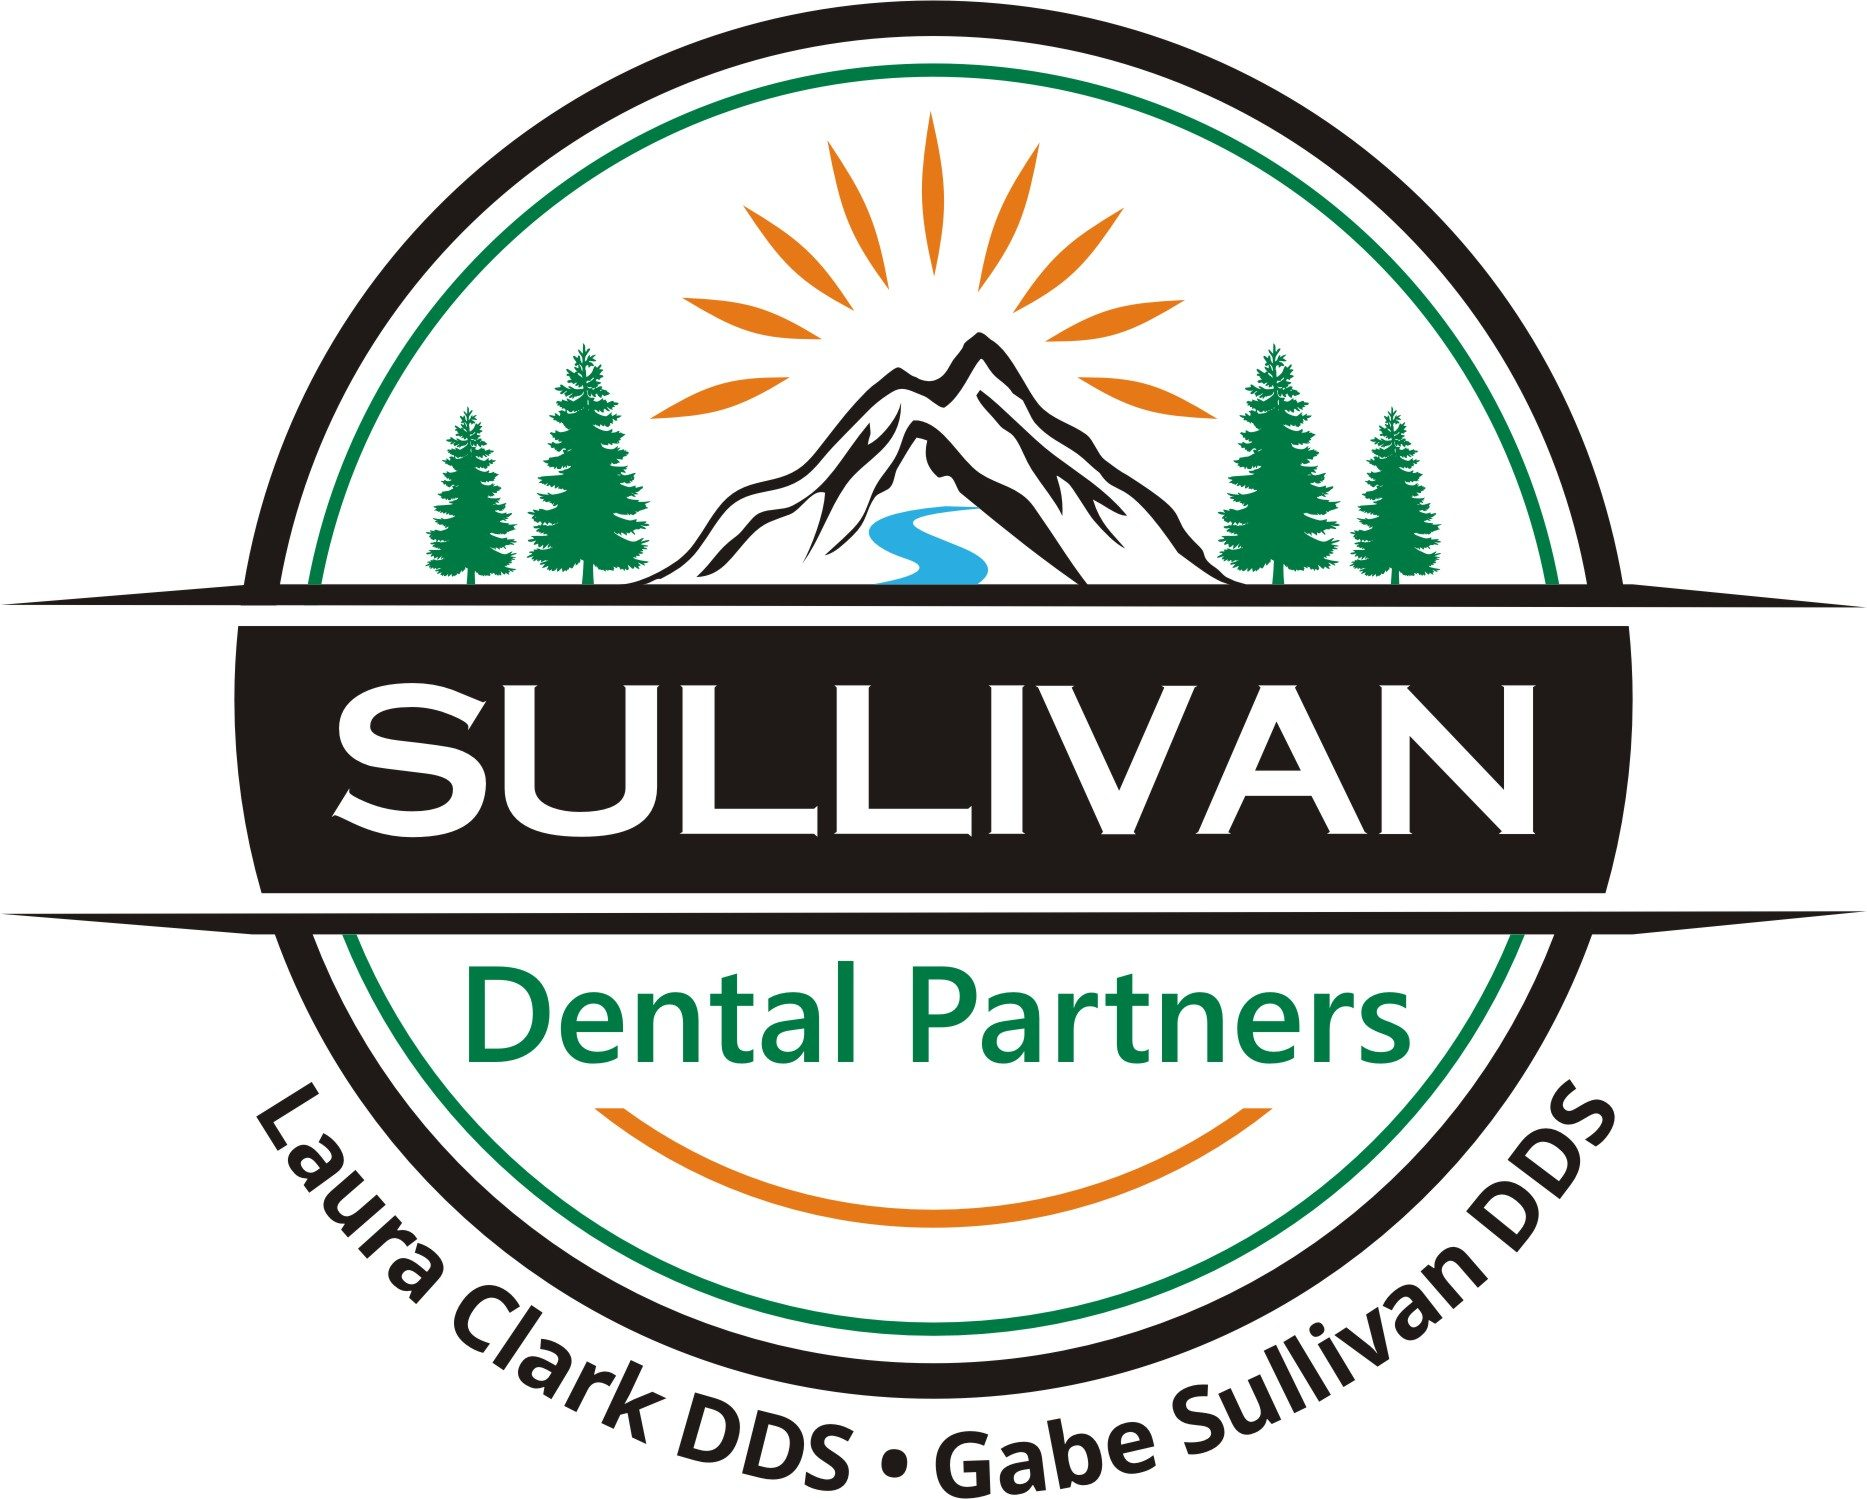 Sullivan Dental Partners